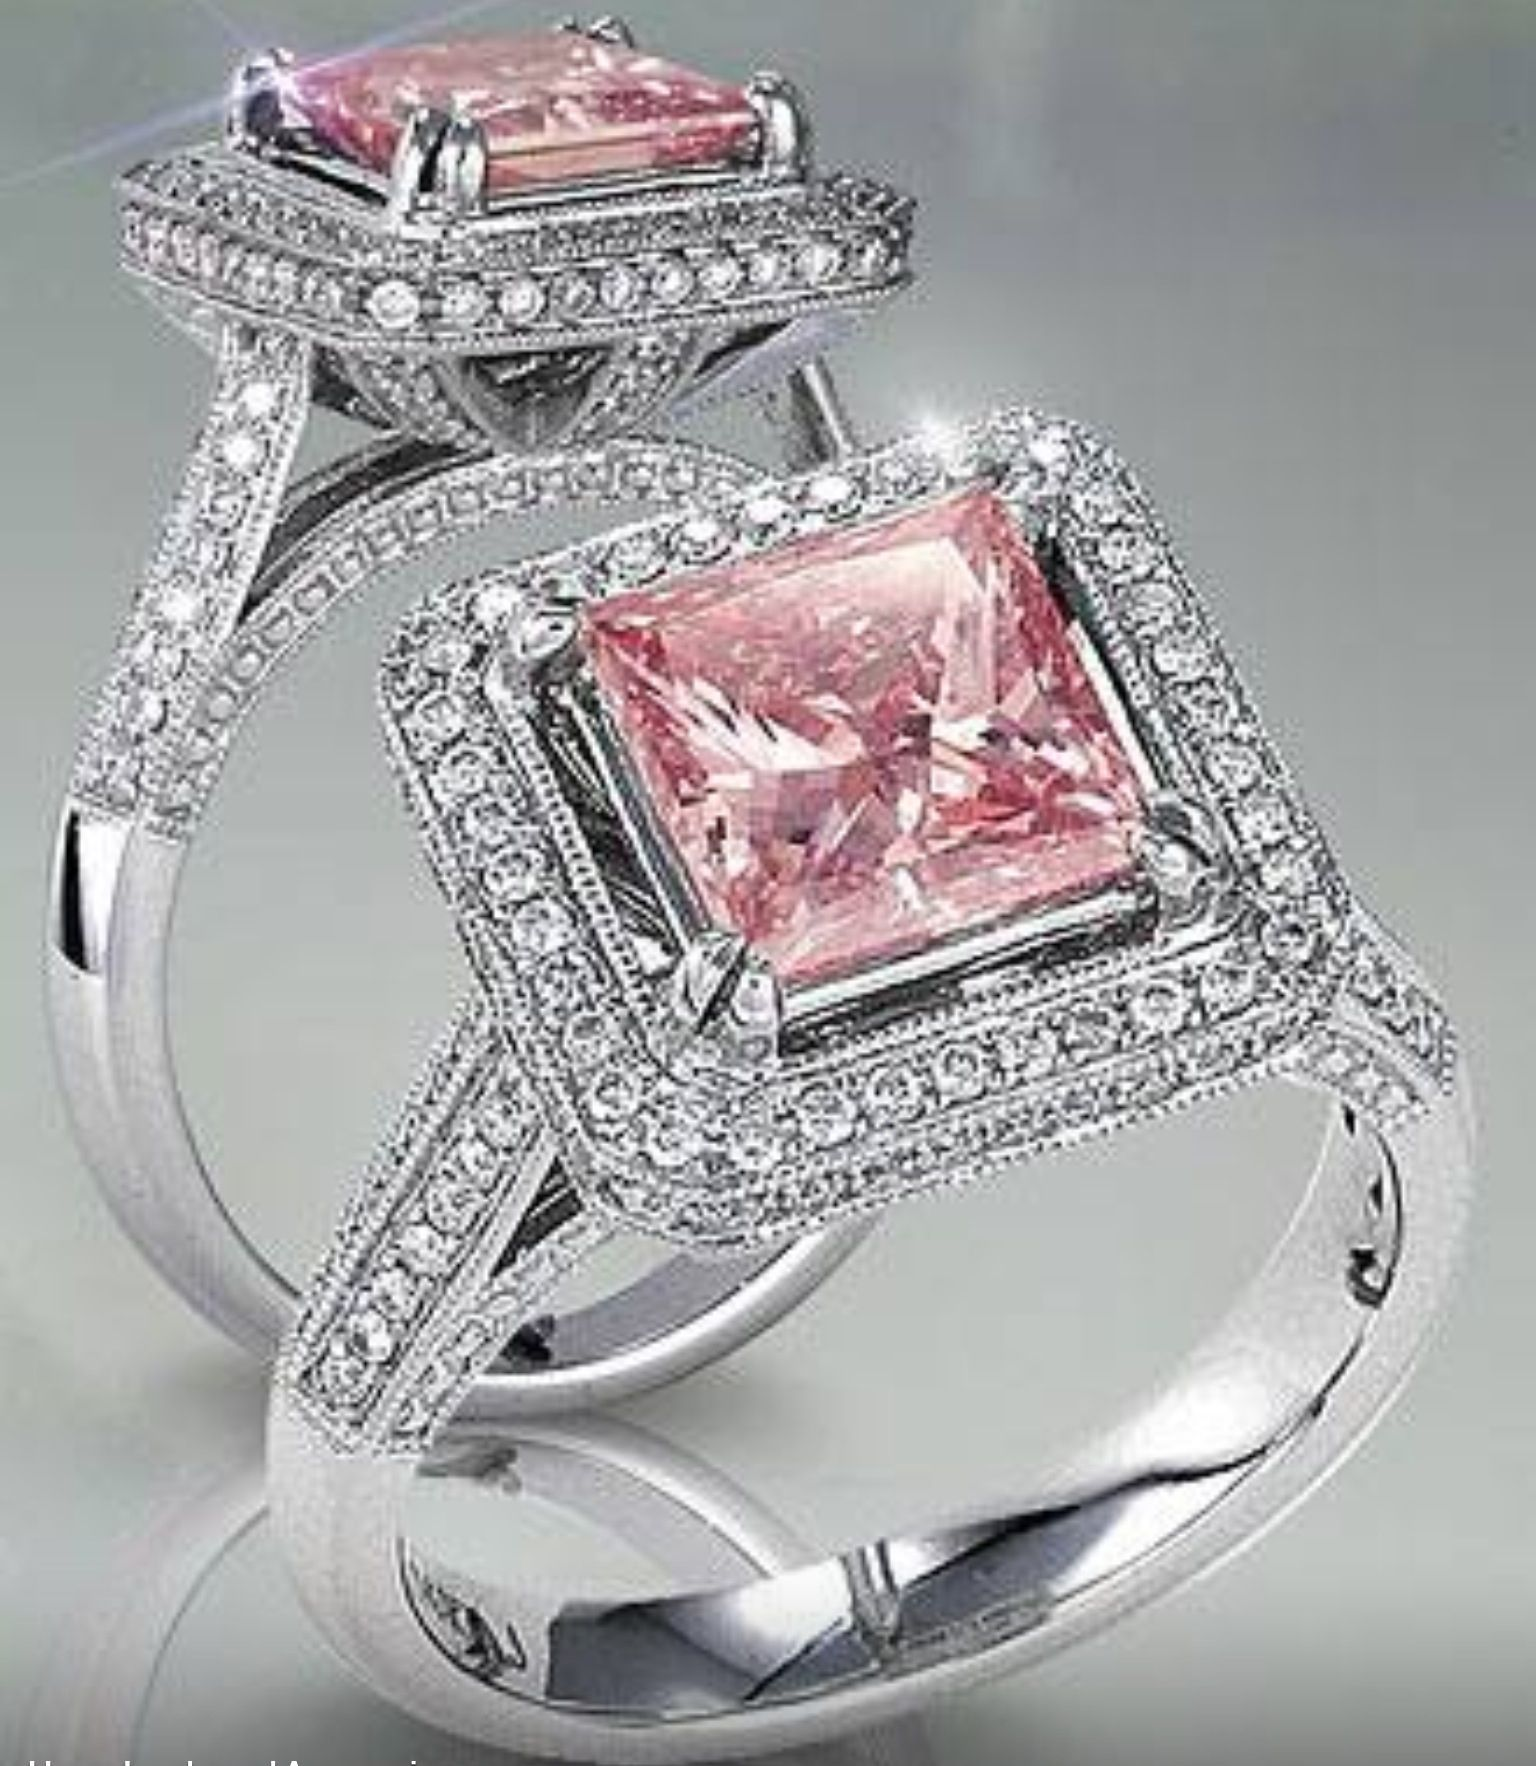 Pin By Robyn Mcswain On Incredible Jewellery Pink Diamonds Engagement Pink Diamond Engagement Ring Pink Diamond Ring